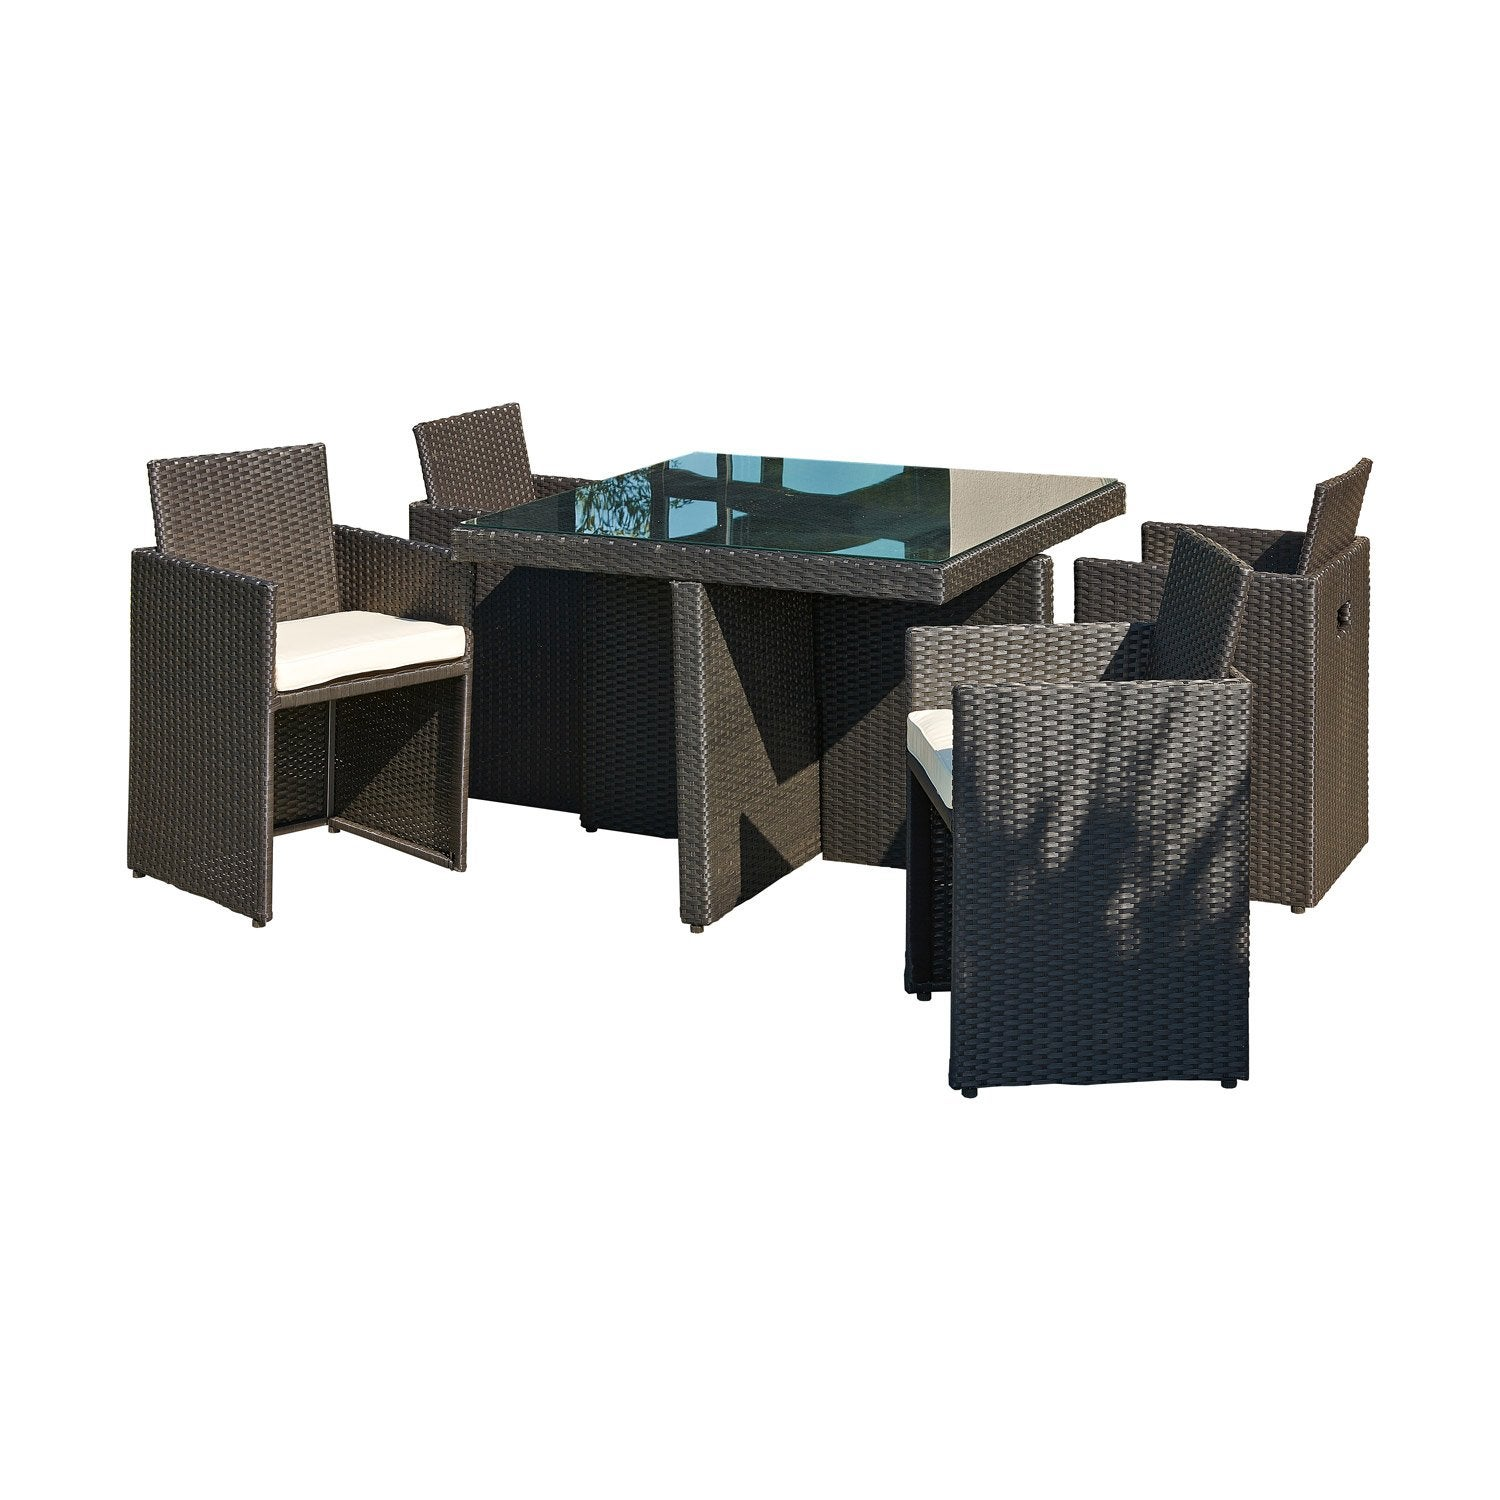 salon de jardin encastrable r sine plastique noir 1. Black Bedroom Furniture Sets. Home Design Ideas